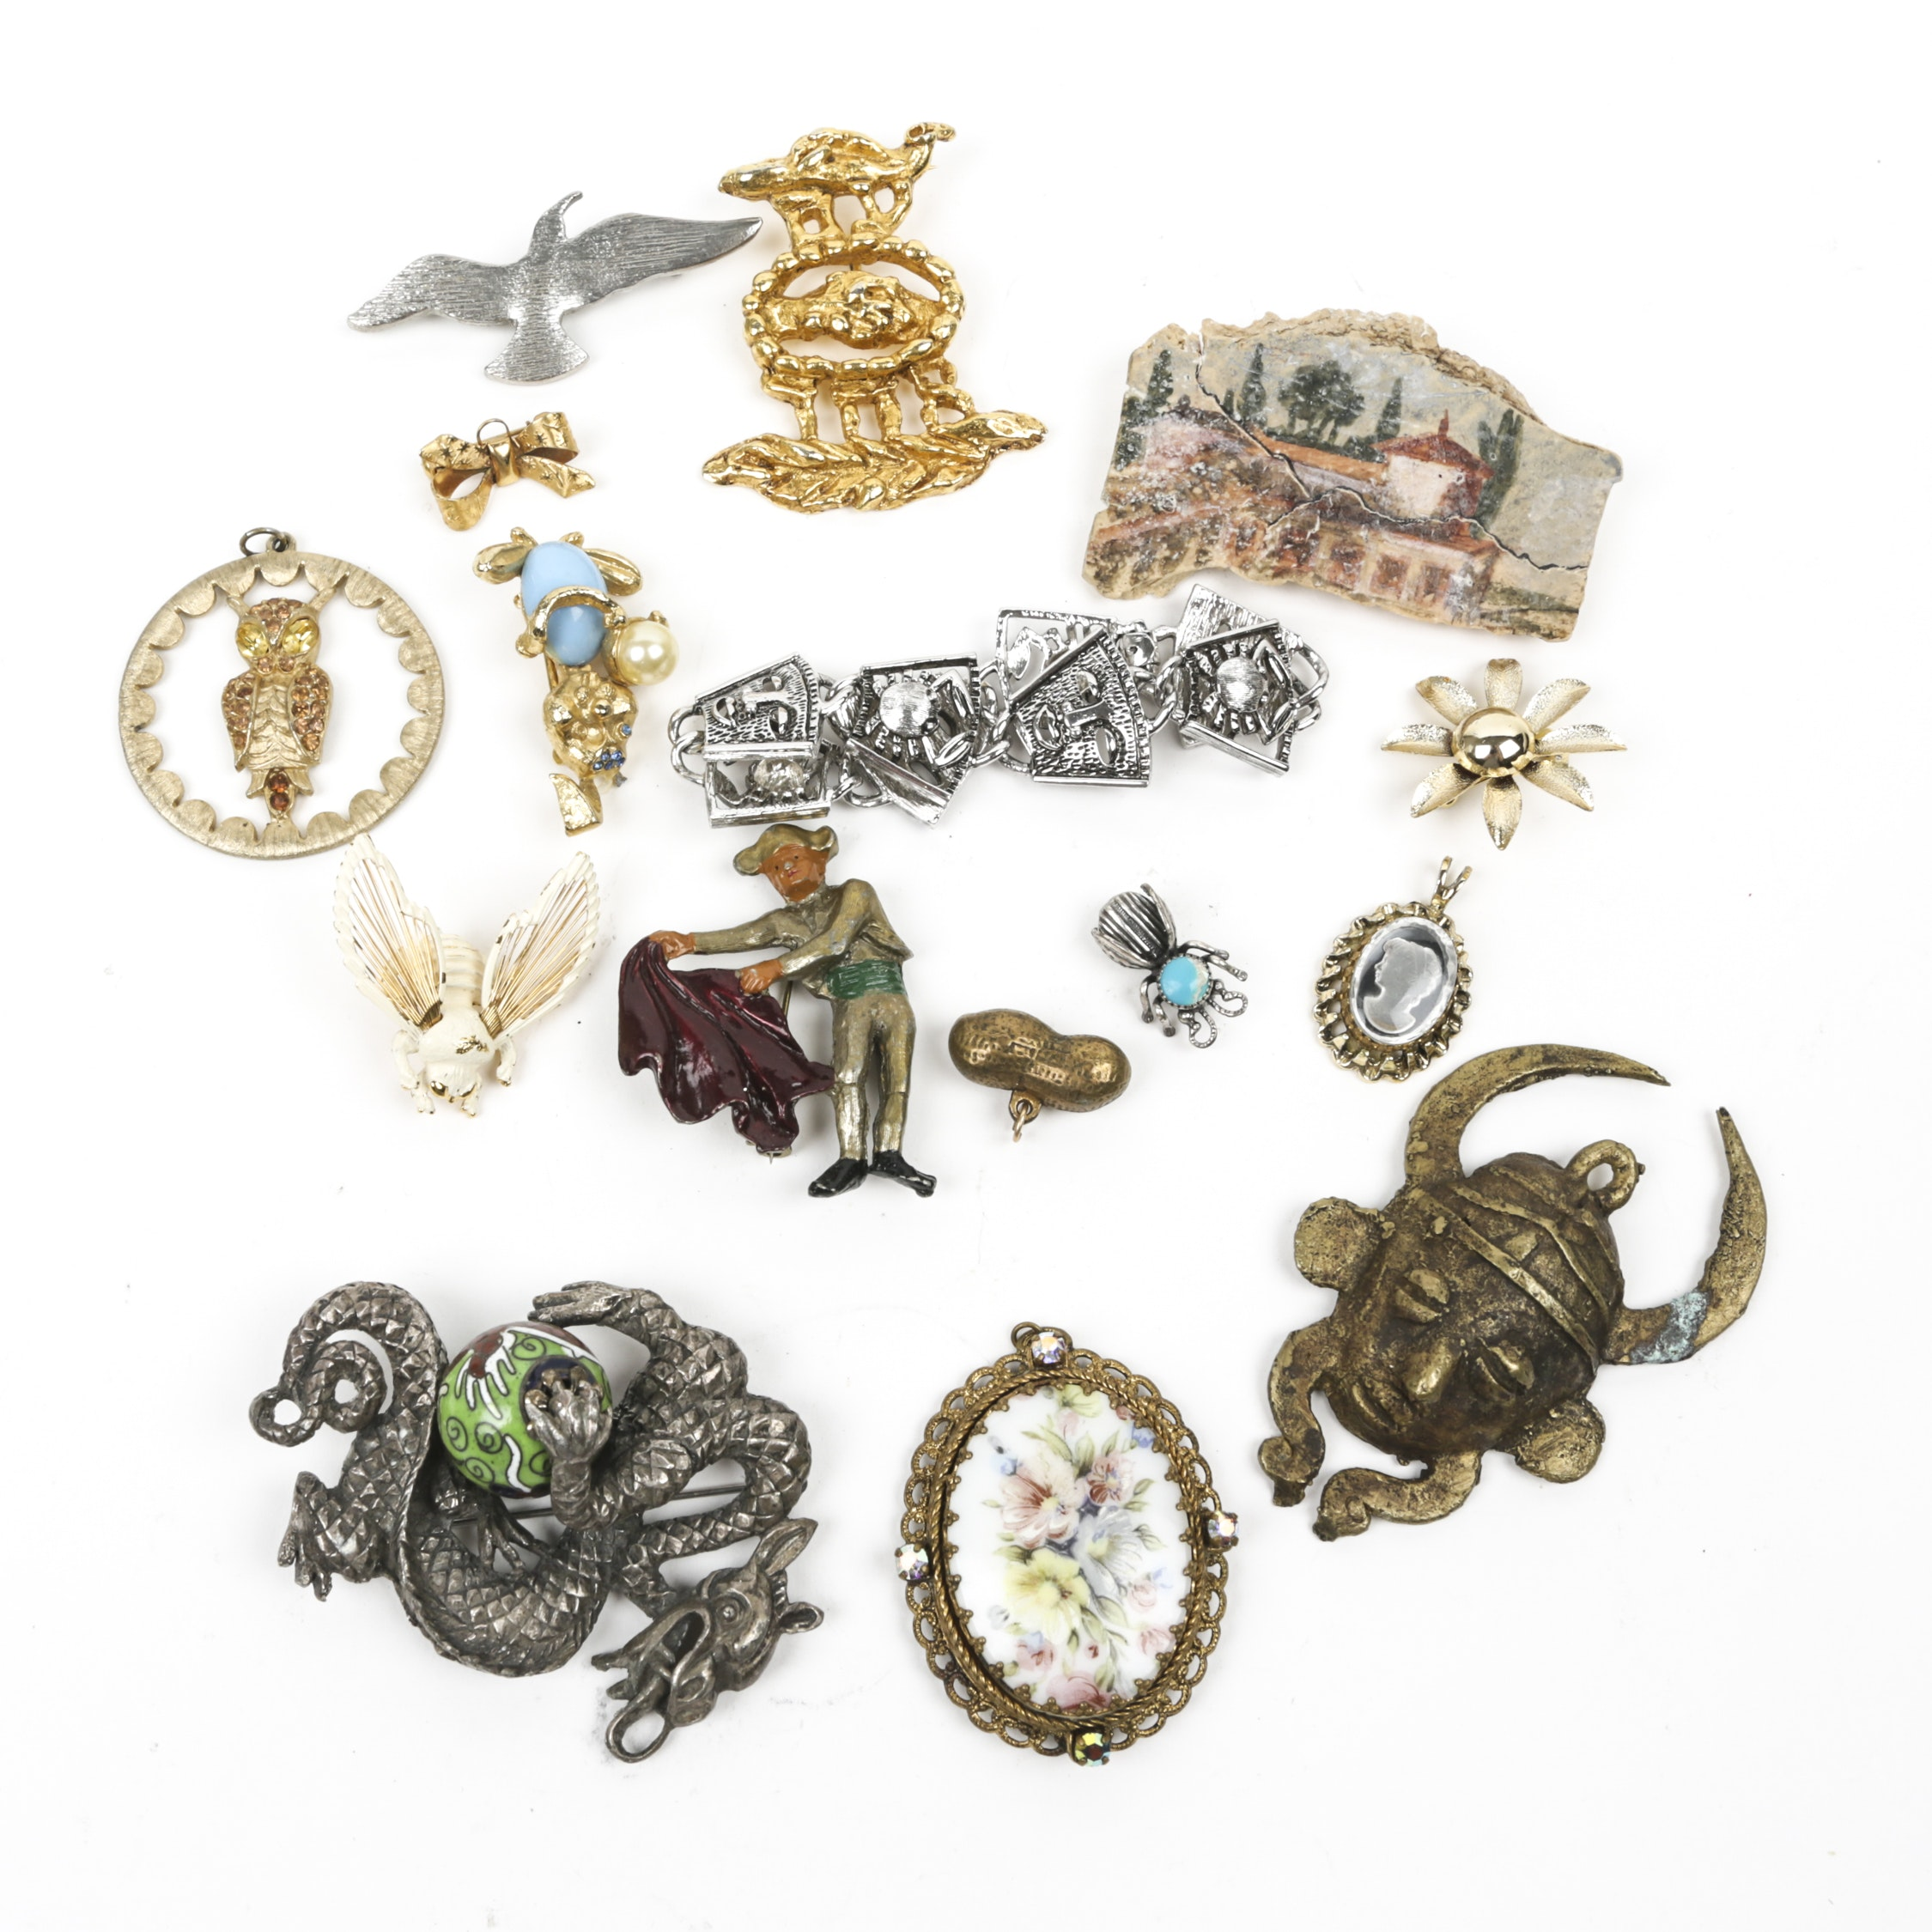 Vintage Figural Brooches Including Rhinestone, Intaglio and Cloisonné Enamel